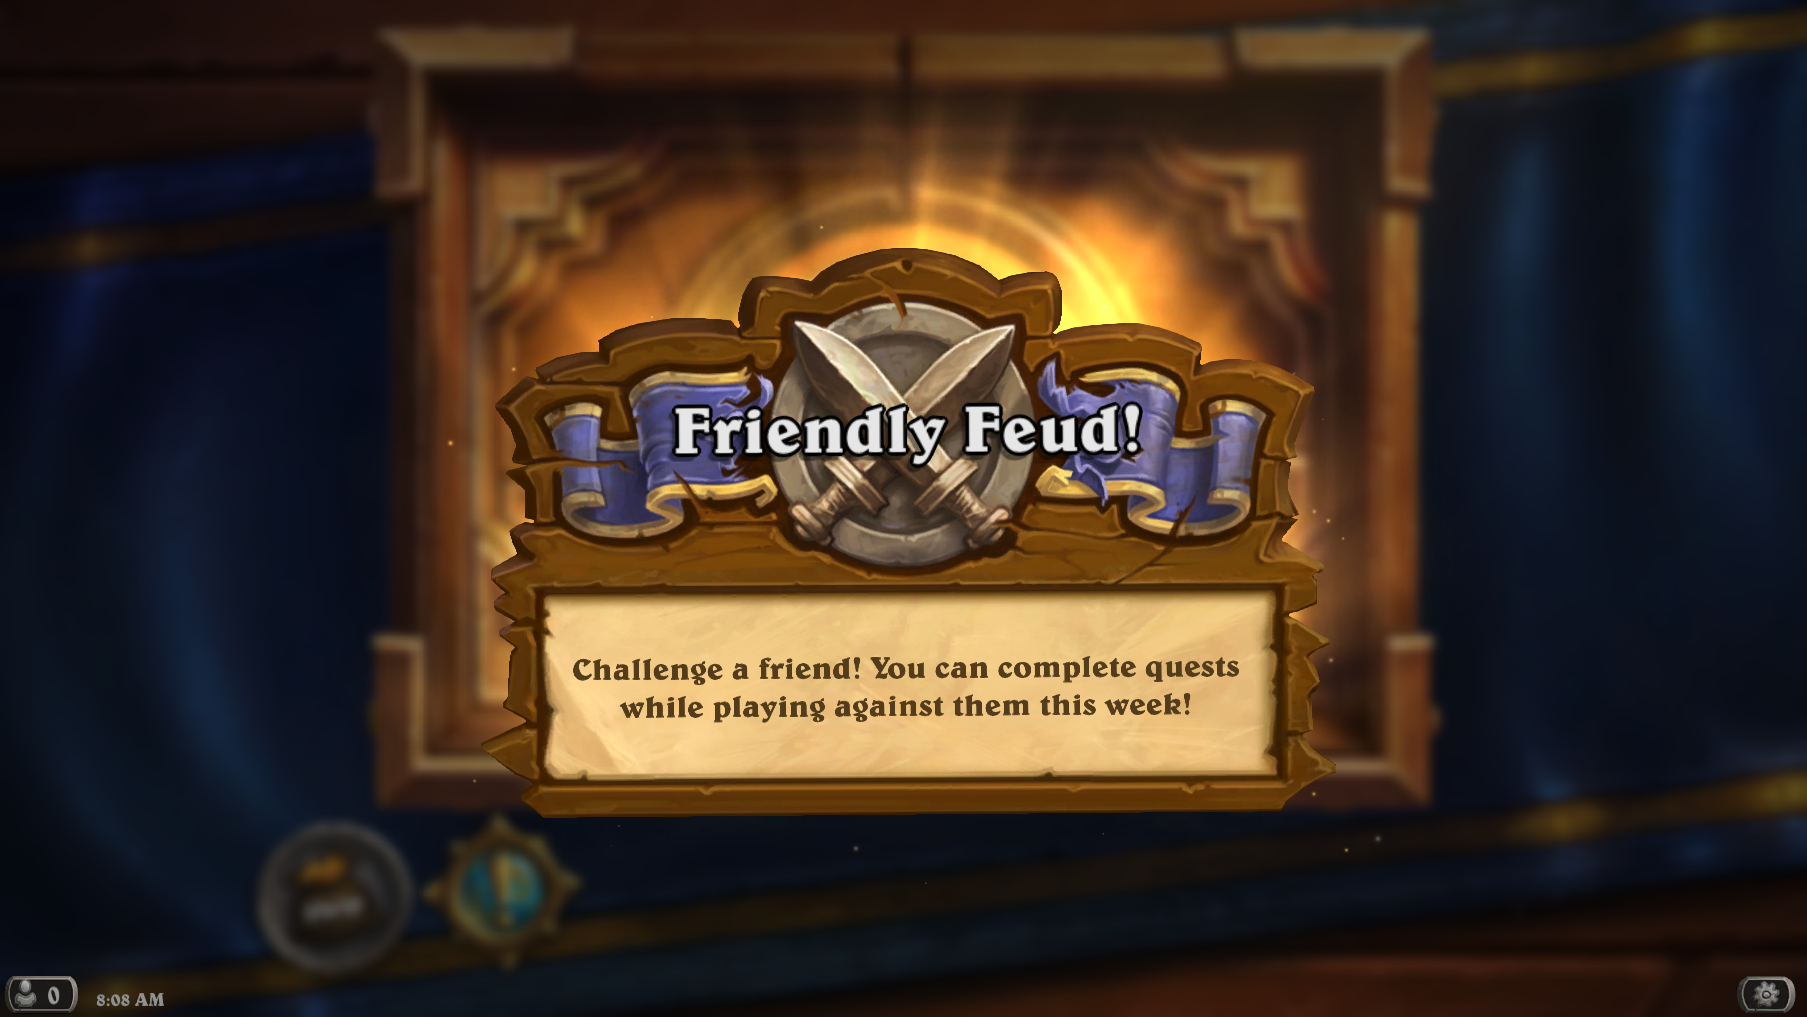 hearthstone screenshot 07-18-16 08.08.09.png